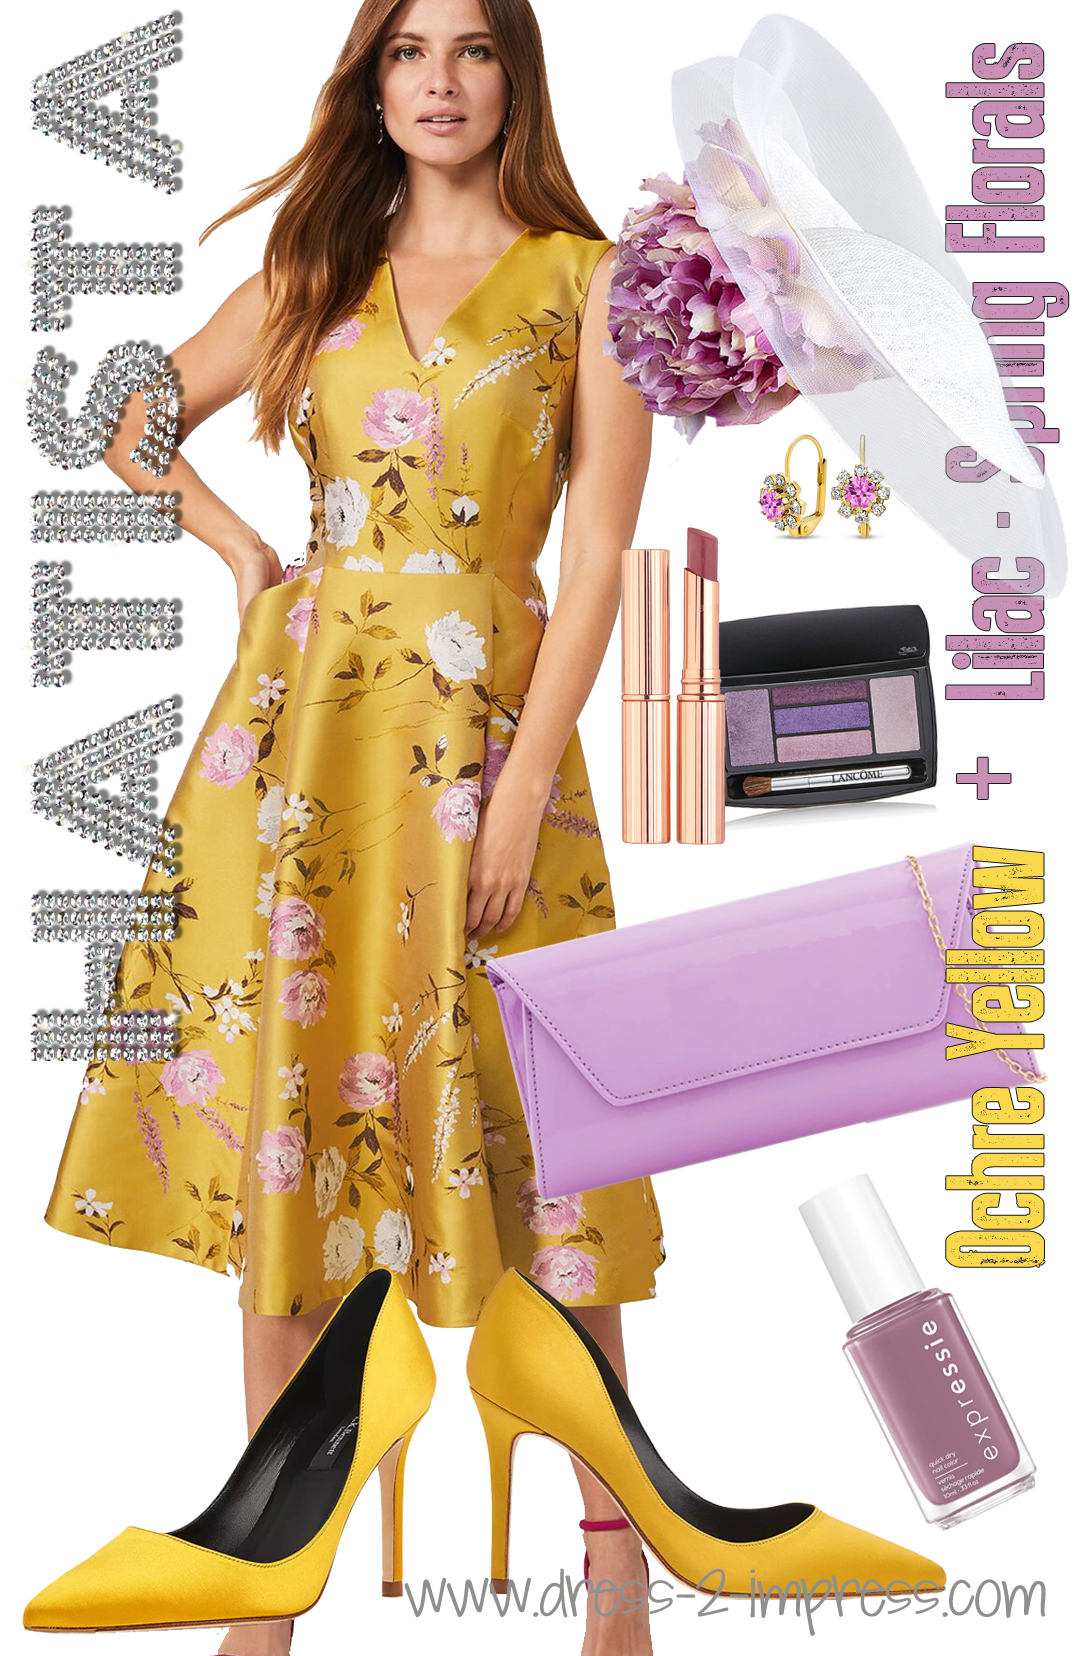 Outfits for Spring Summer Mother of the Bride 2021. Outfit inspiration with Pantone Color of the Year 2021 - Illuminating Yellow. What to wear to a Spring Summer Wedding 2021. Ladies outfits for Weddings 2021. Wedding Guest outfit ideas 2021. Floral Outfits for Wedding Guests 2021. How to wear Yellow 2021. Spring Wedding Mother of the Bride Outfit 2021.